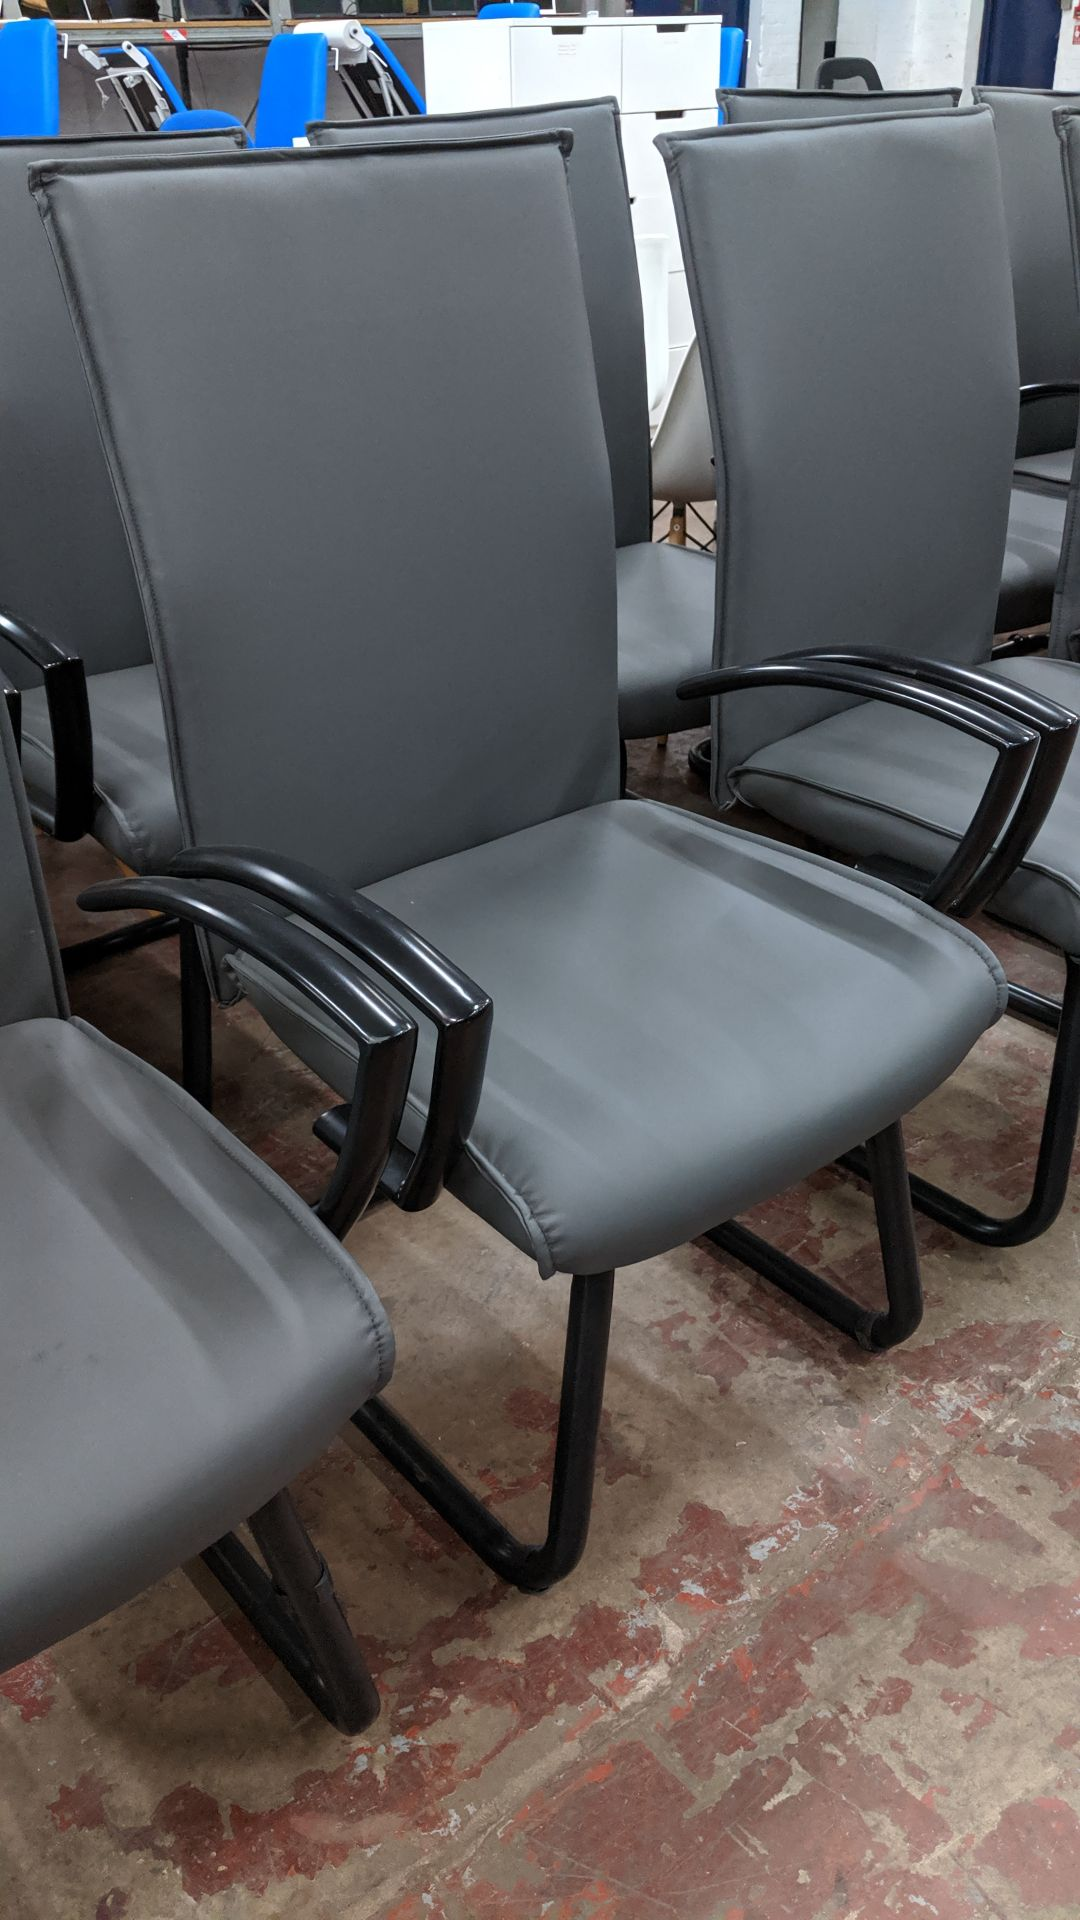 Lot 353 - 6 off black metal cantilever framed executive/meeting chairs with grey leather-look upholstery NB.